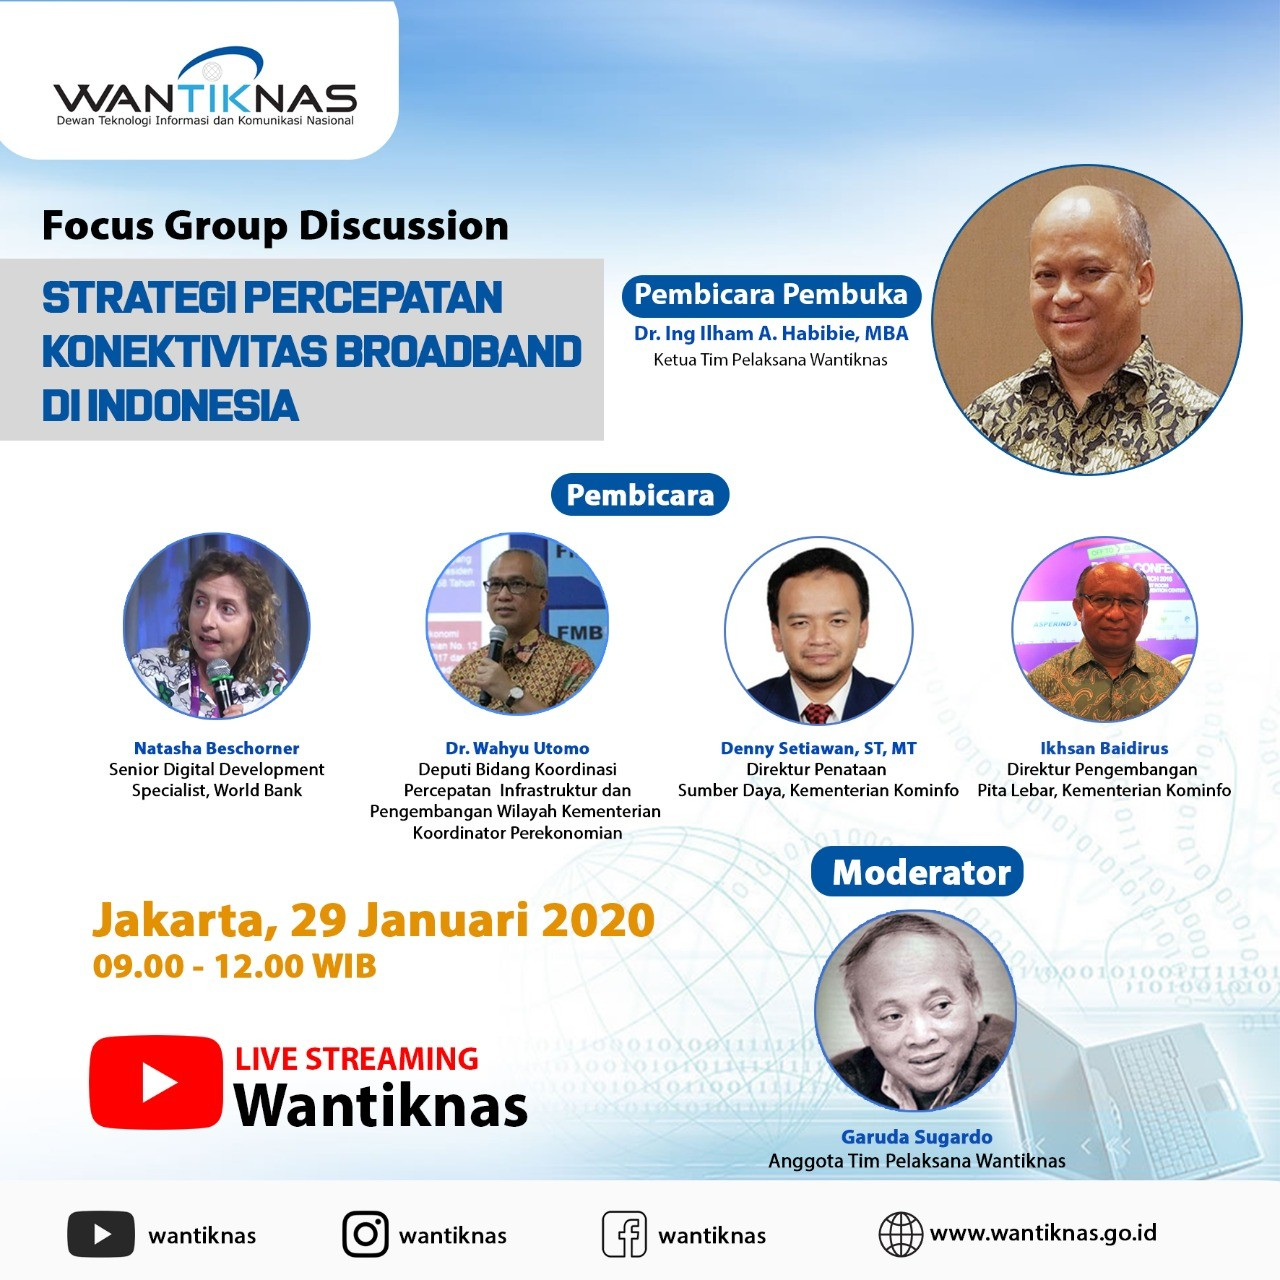 Focus Group Discussion (FGD) Strategi Percepatan Konektivitas Broadband di Indonesia